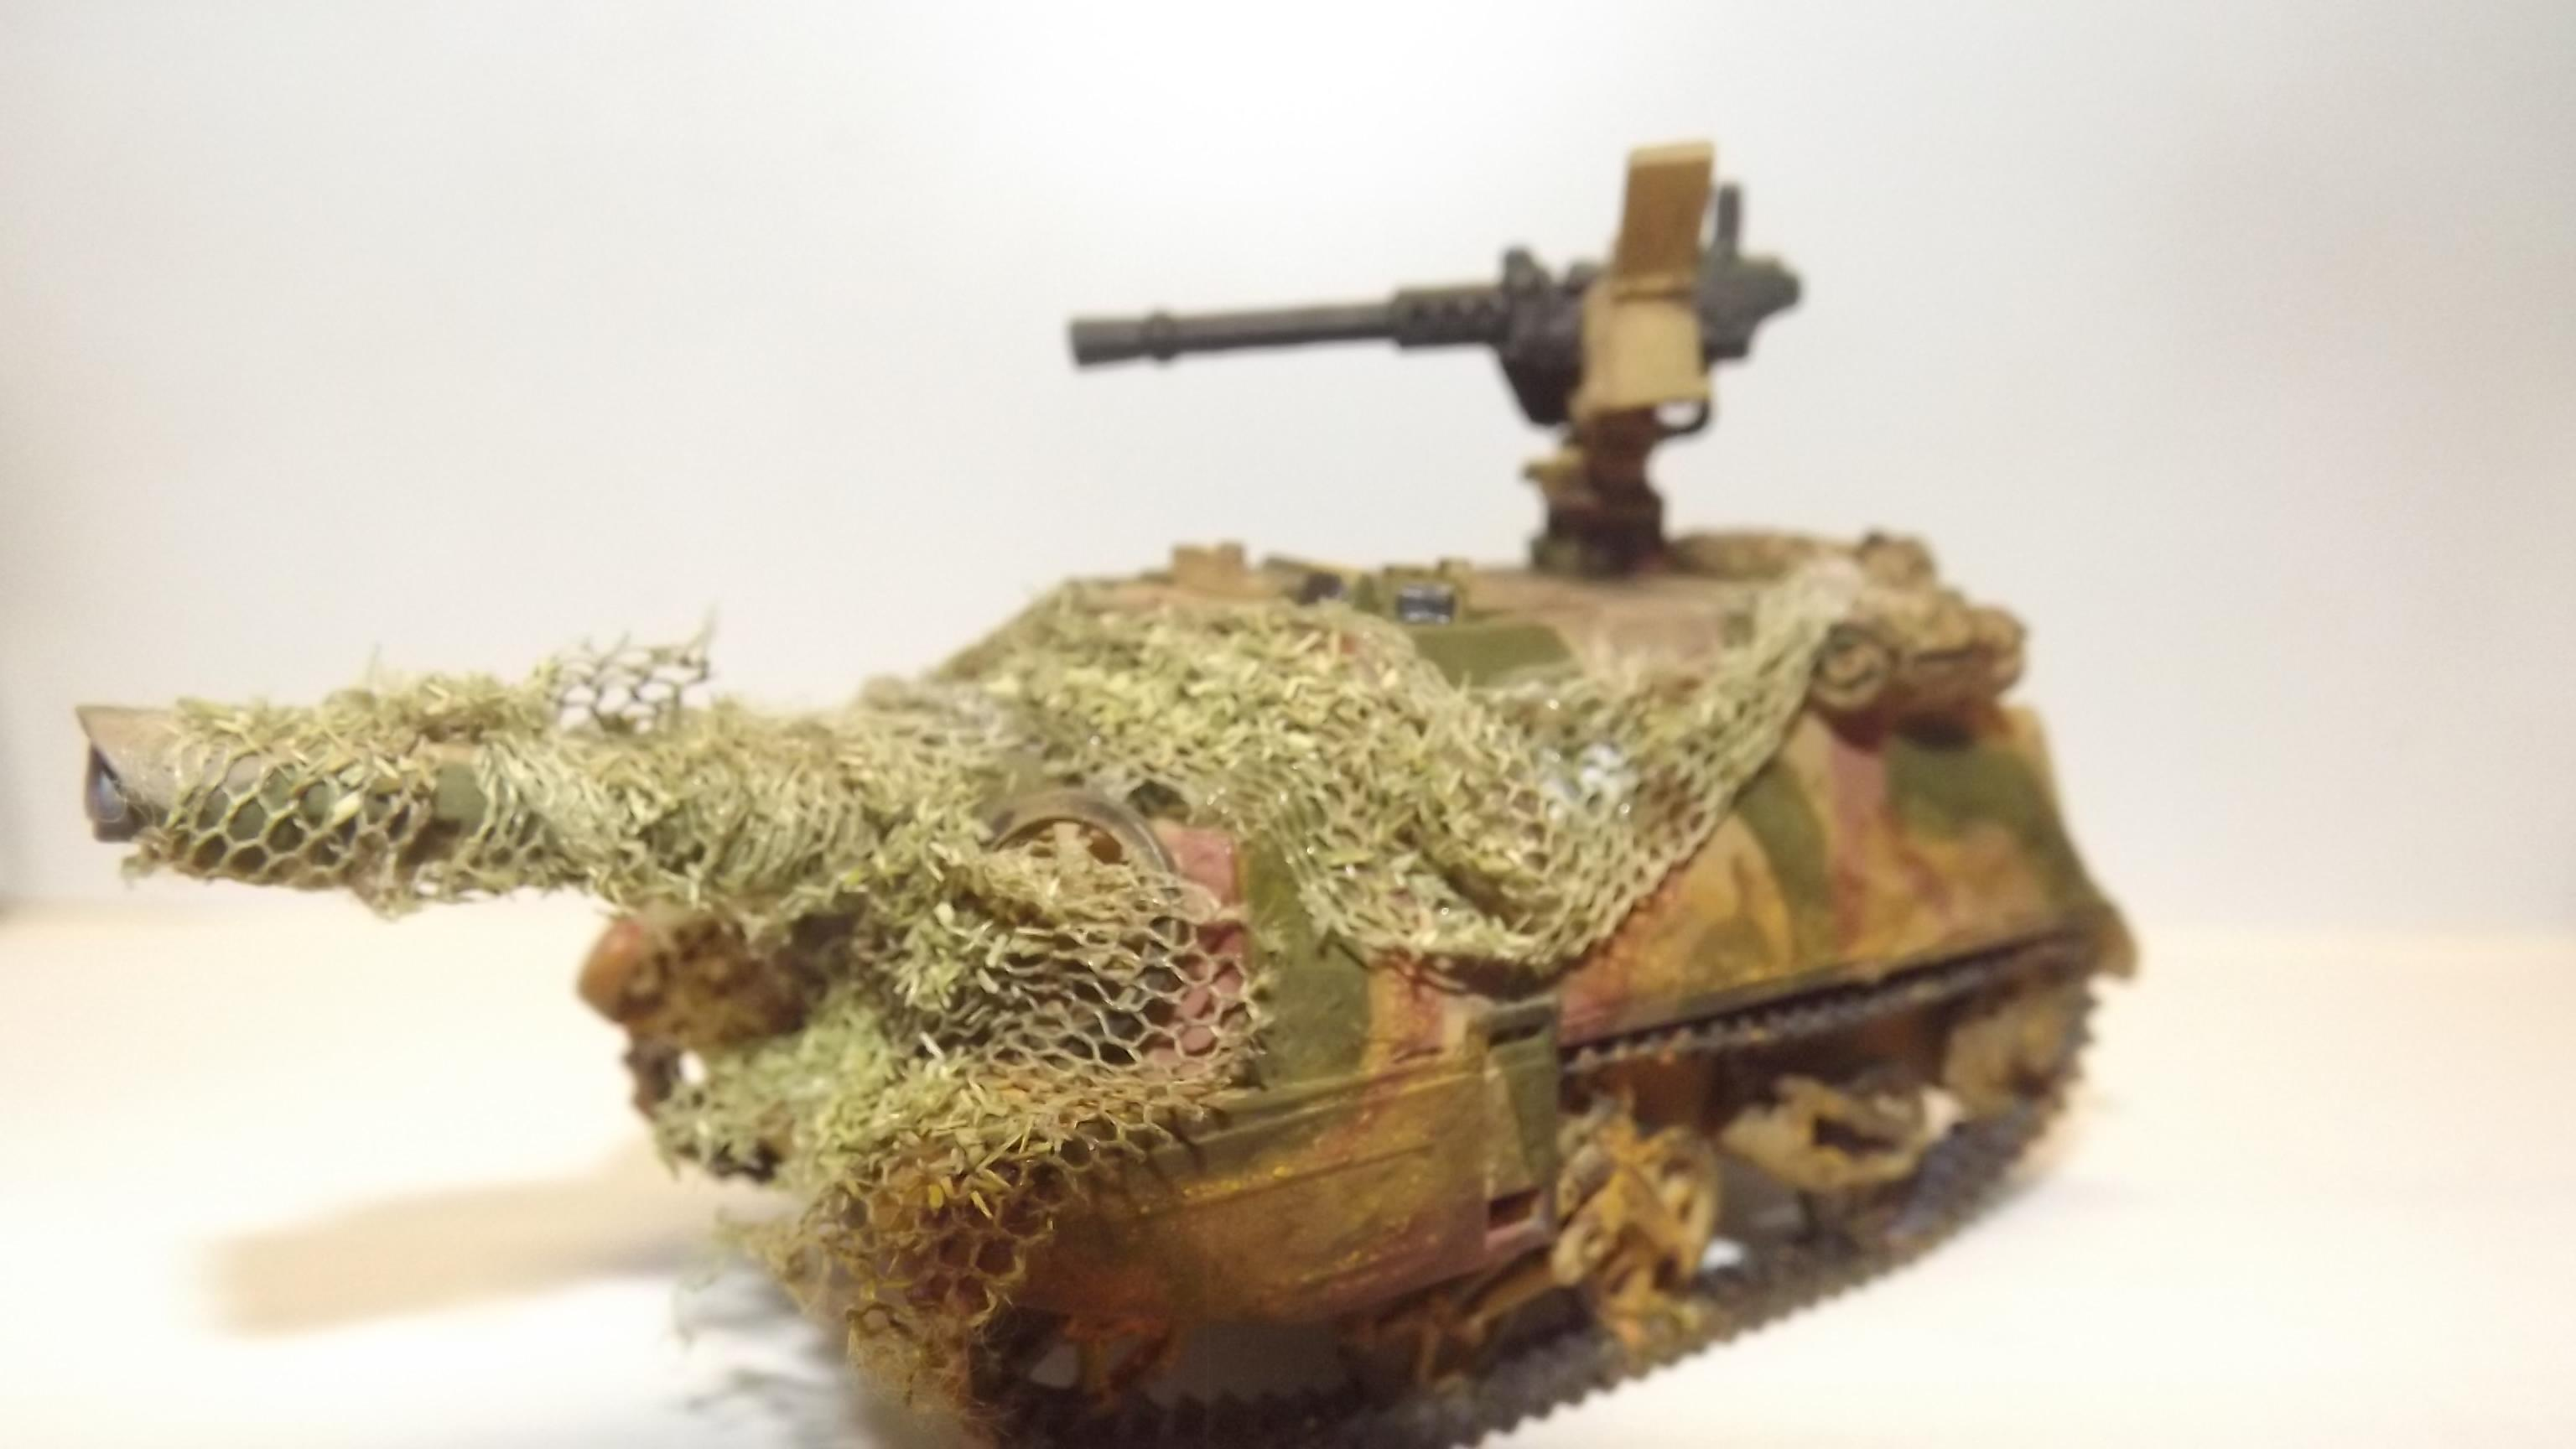 Brengun Carrier, Conversion, Imperial Guard, Light Vehicle, Remote Weapons Stataion, Tamiya, Tank Destryoer, Victoria Miniatures